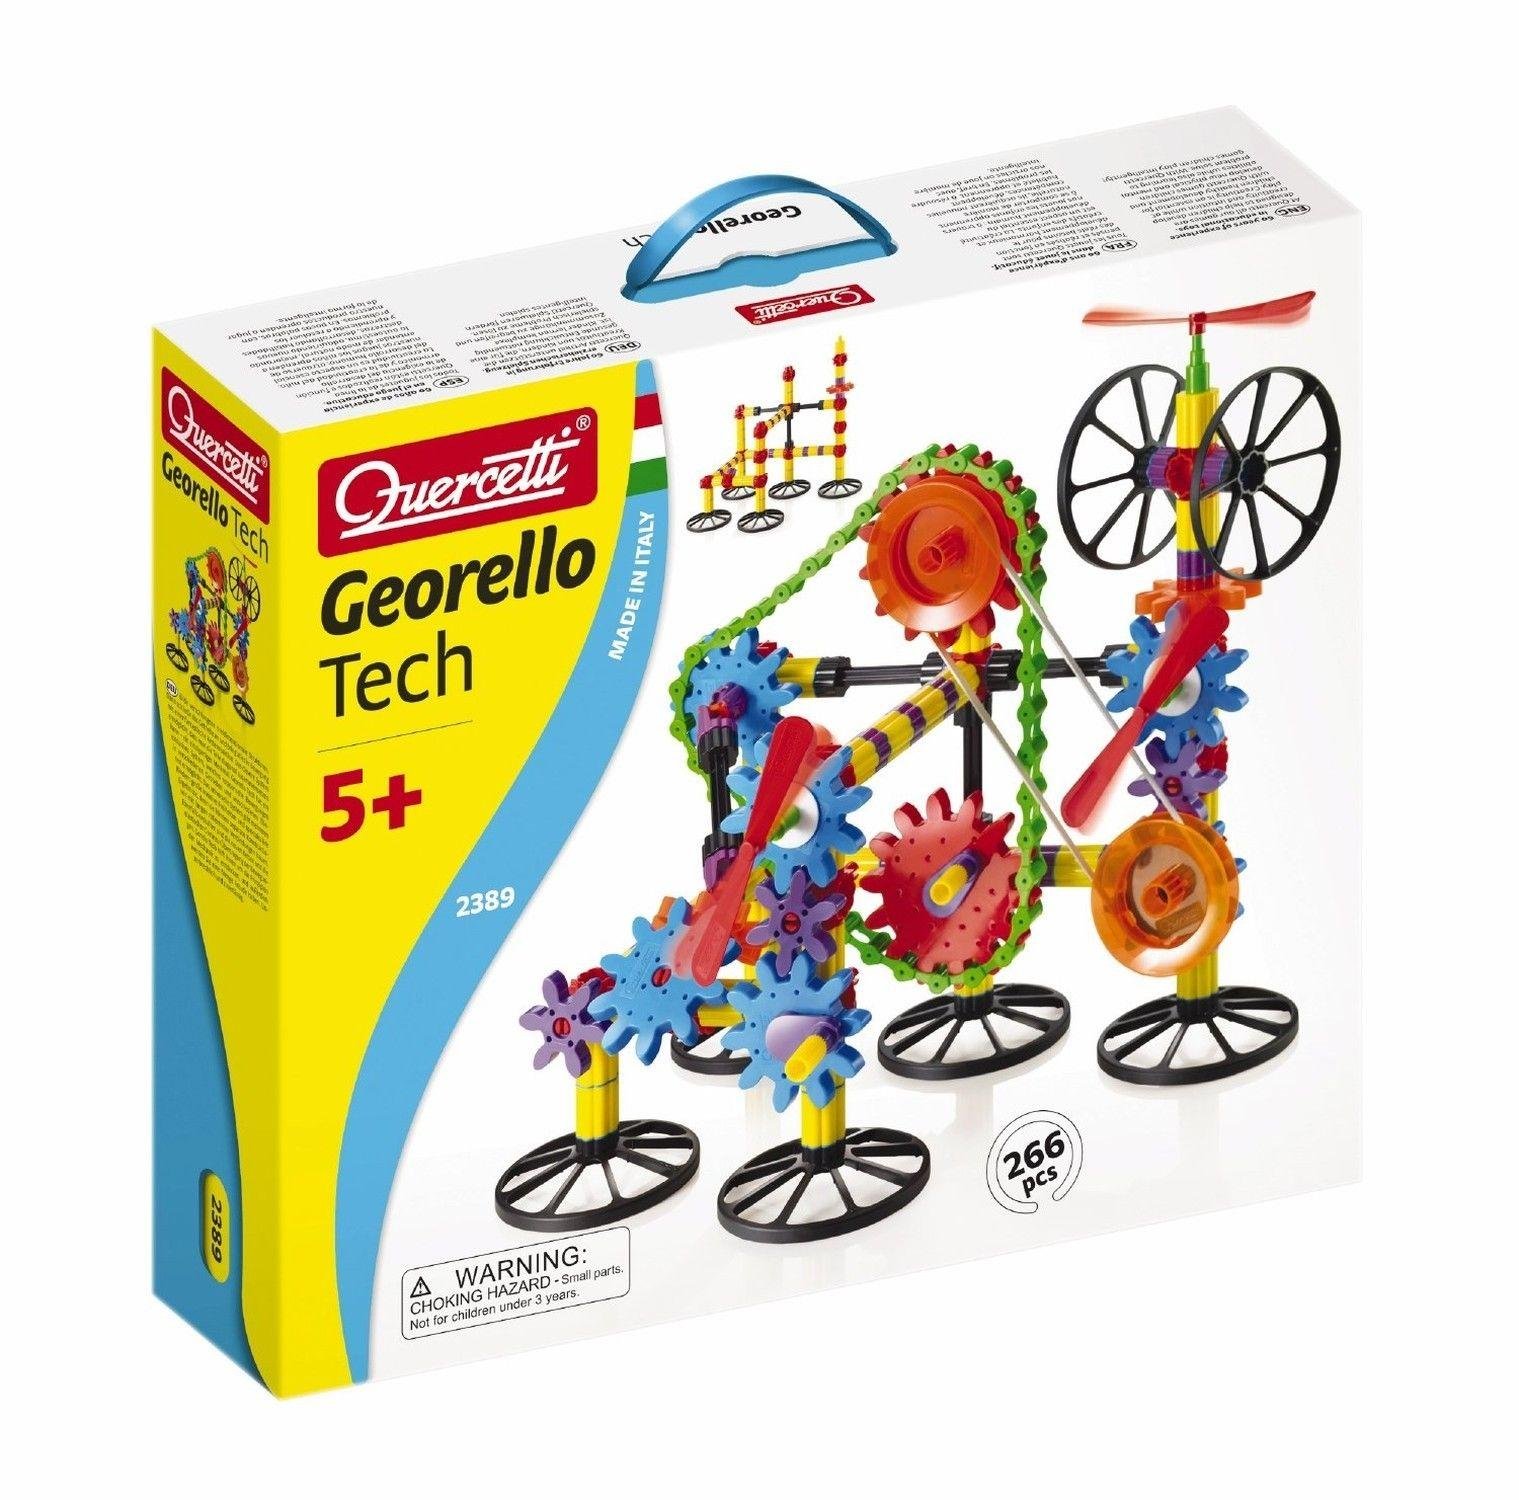 Georello tech (2389)